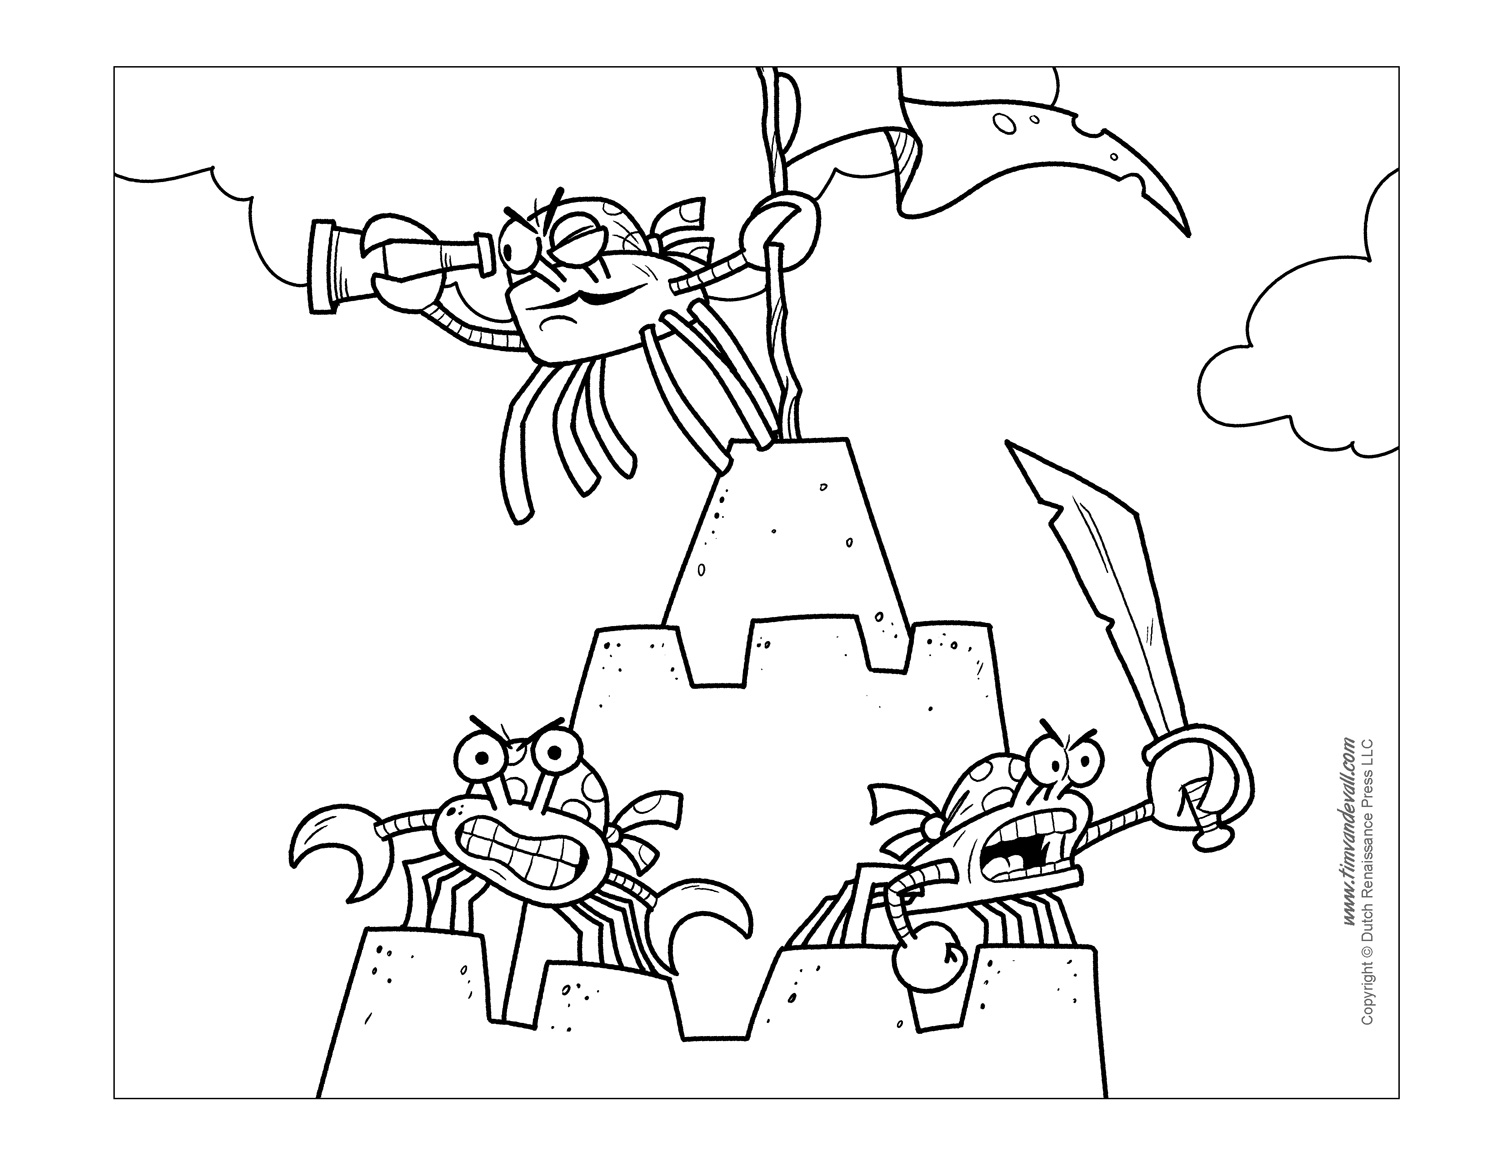 crab coloring pages - Crab Coloring Pages